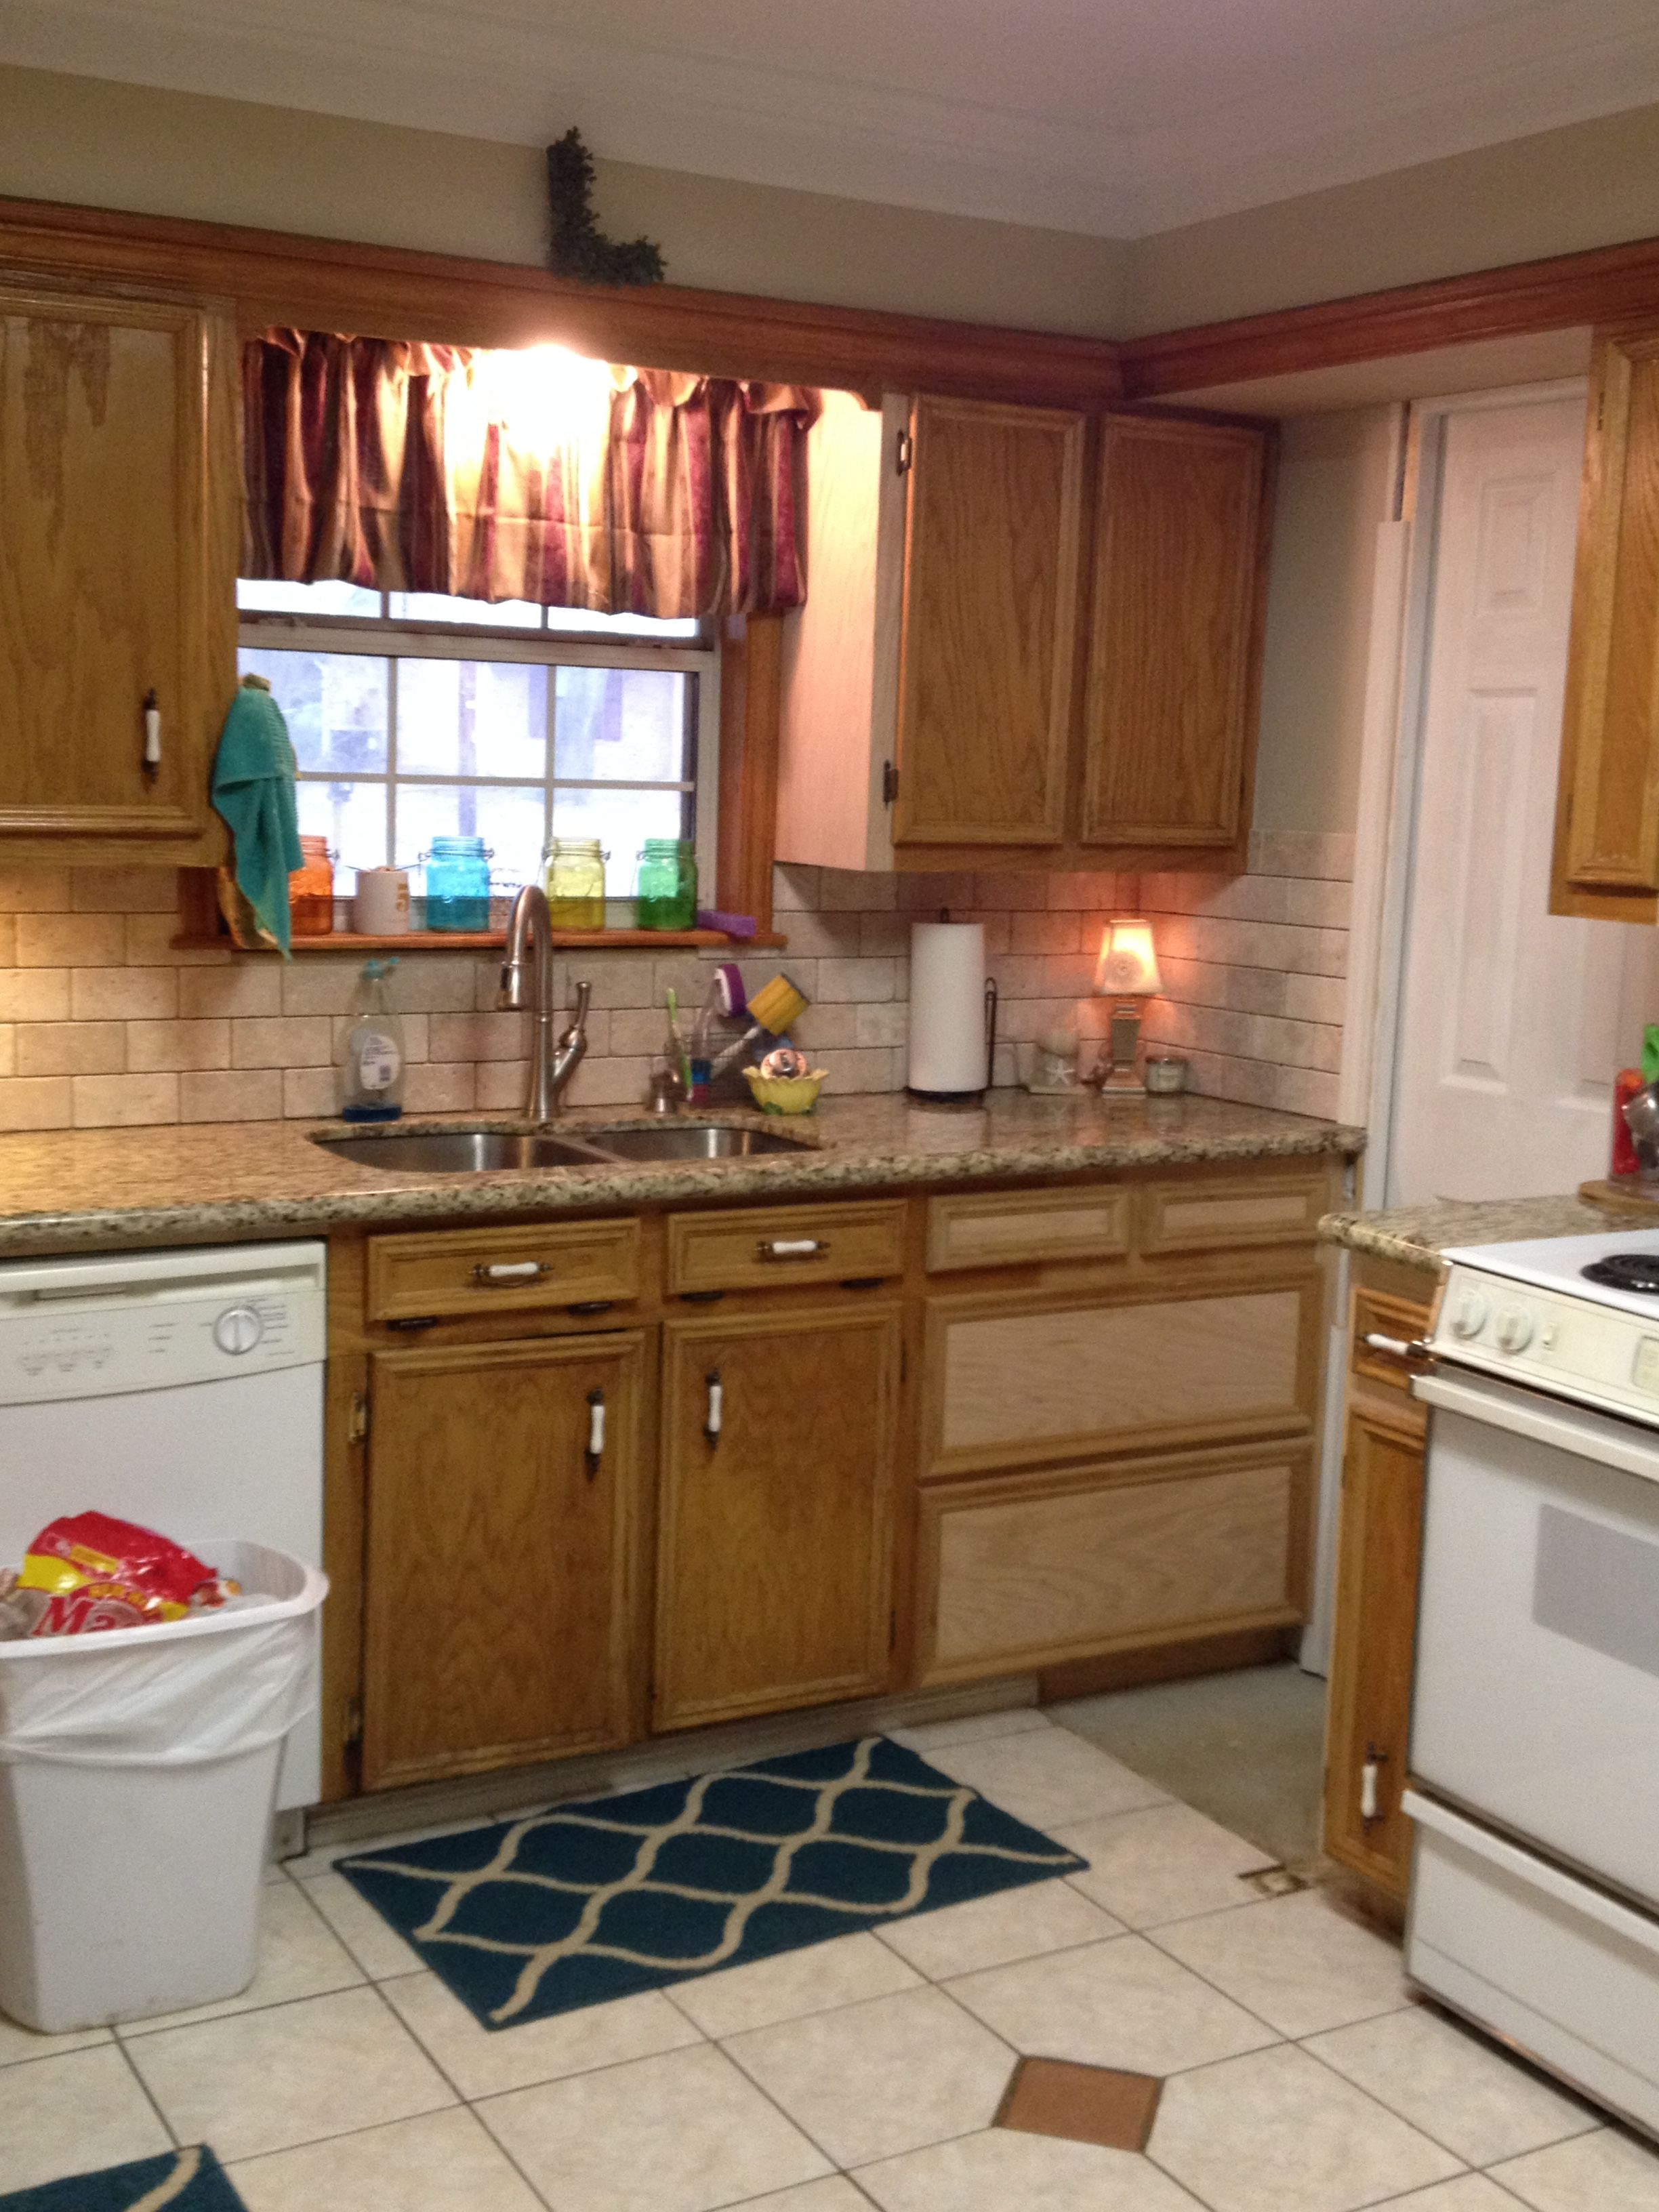 Before Dated Tile Dated Oak Cabinets Best Kitchen Cabinets Kitchen Cabinets Kitchen Cabinet Colors